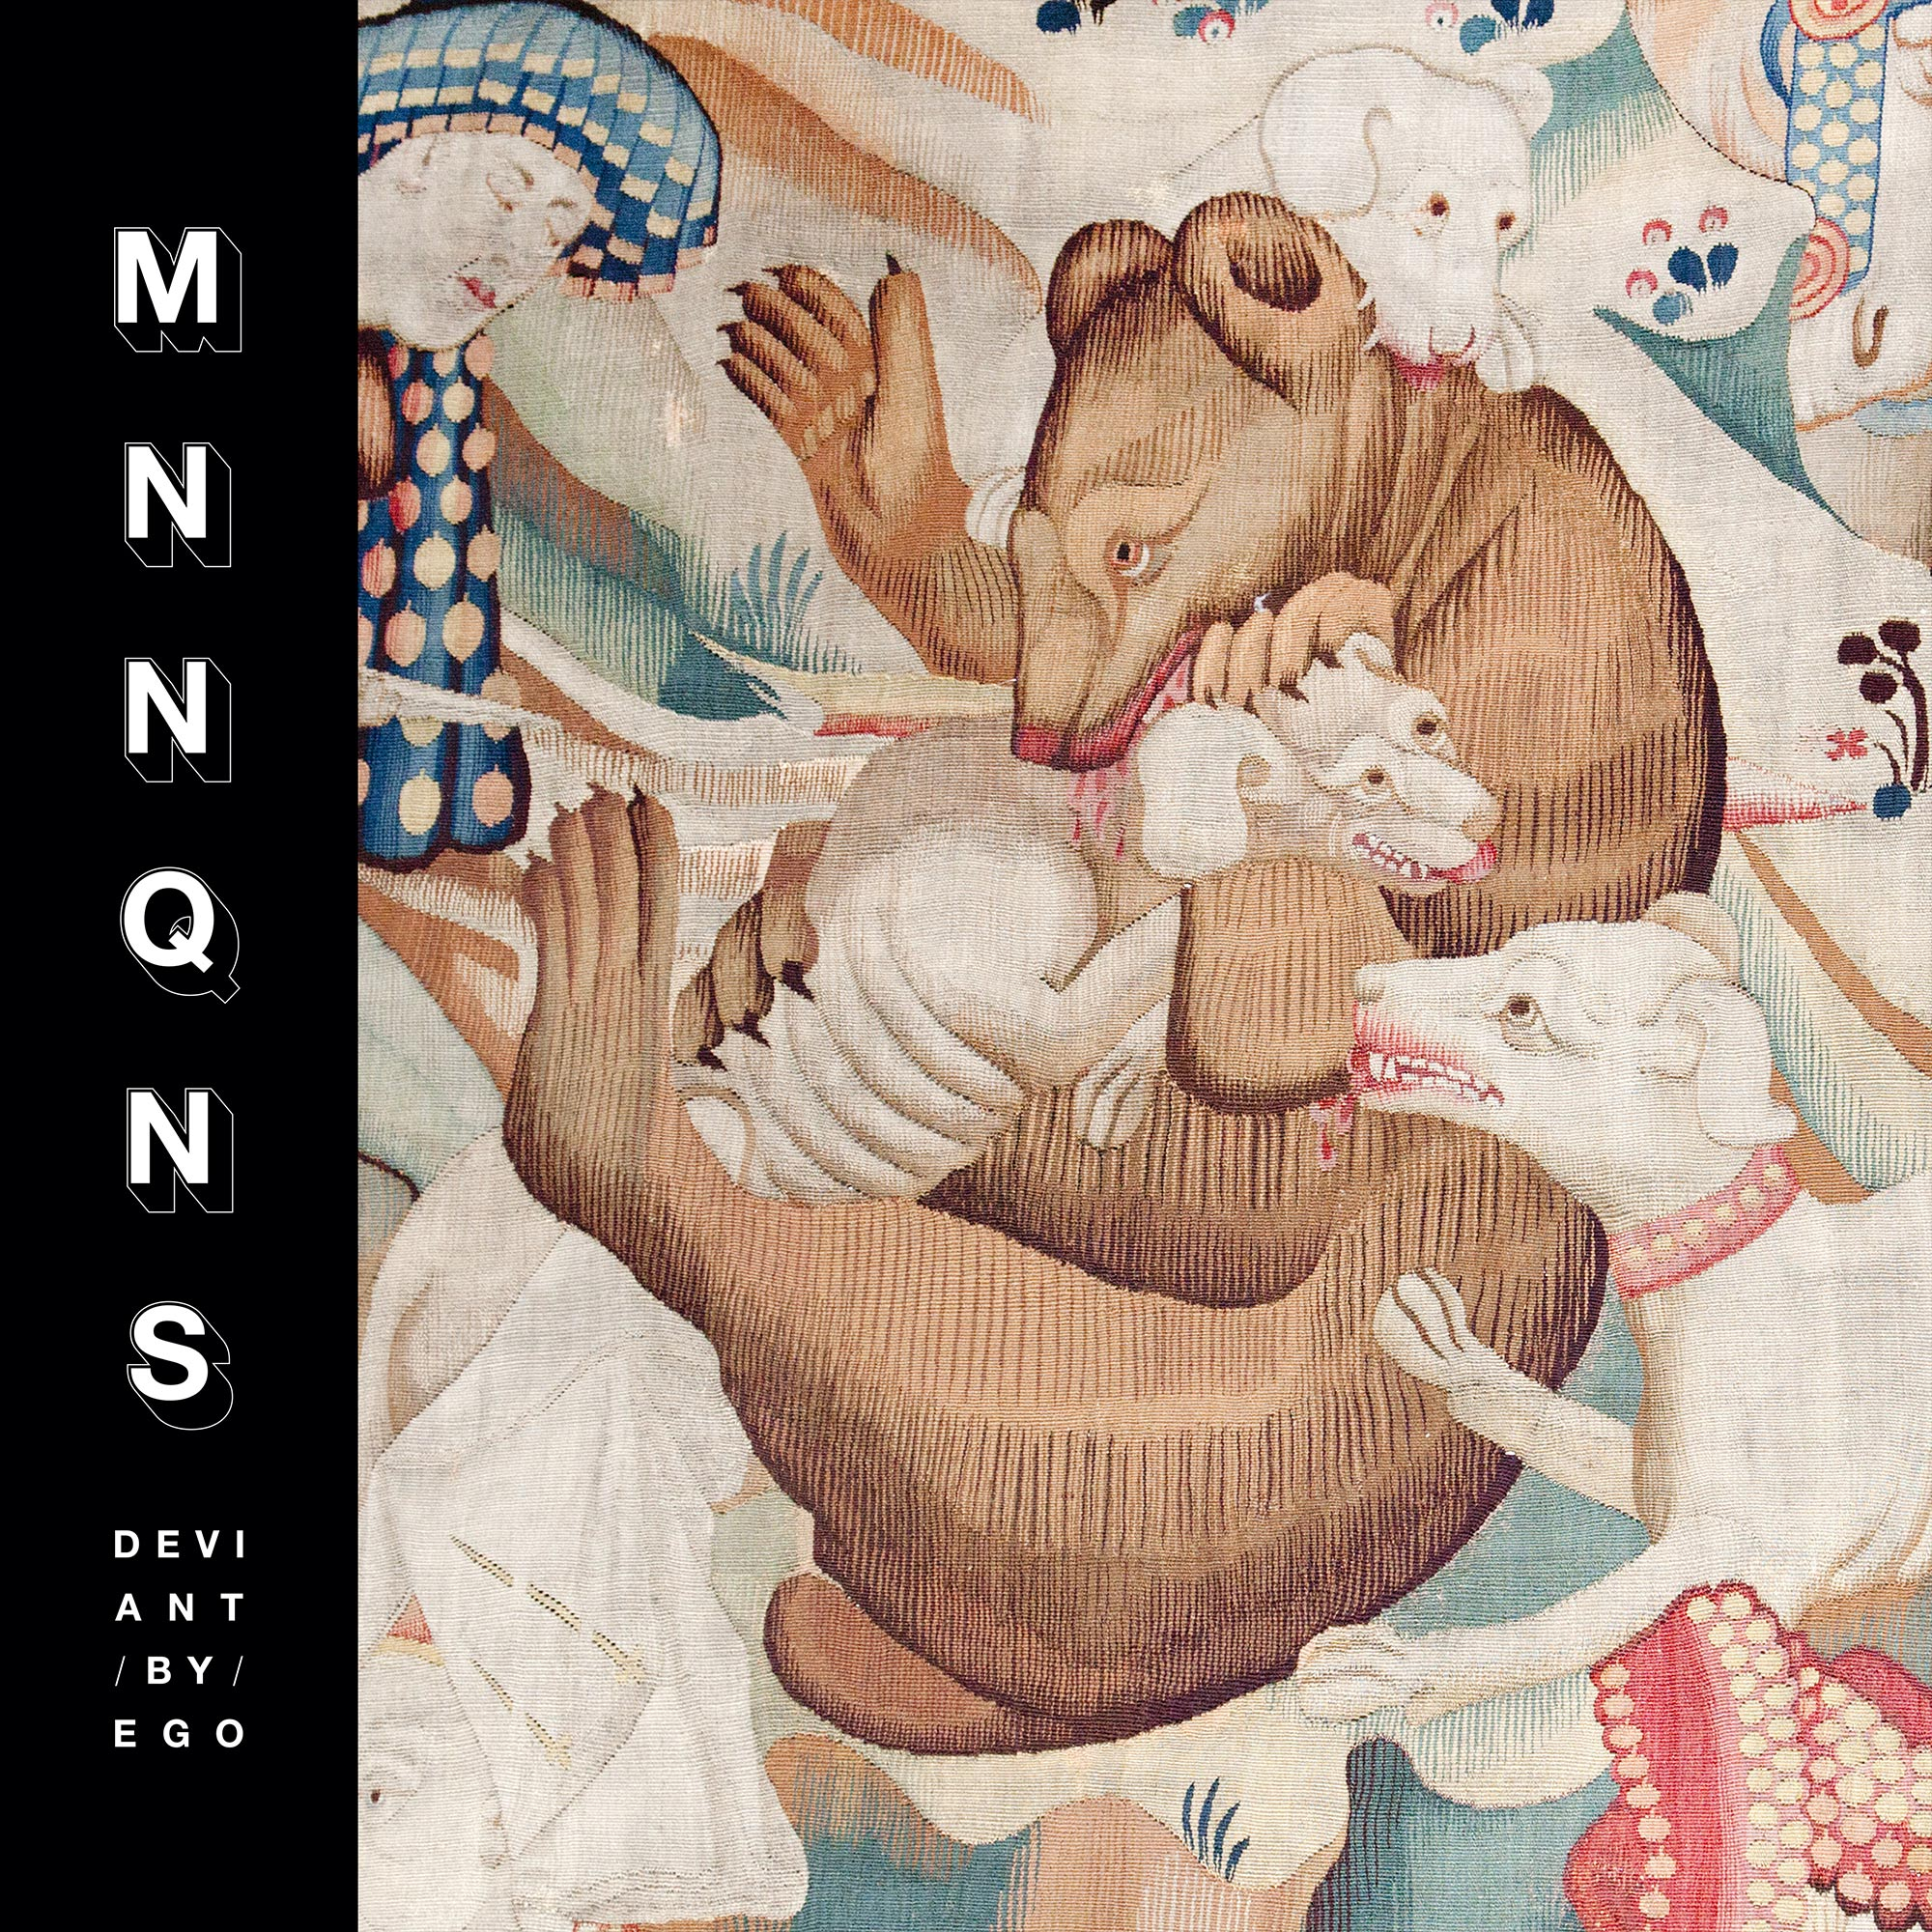 News – MNNQNS – Deviant by Ego